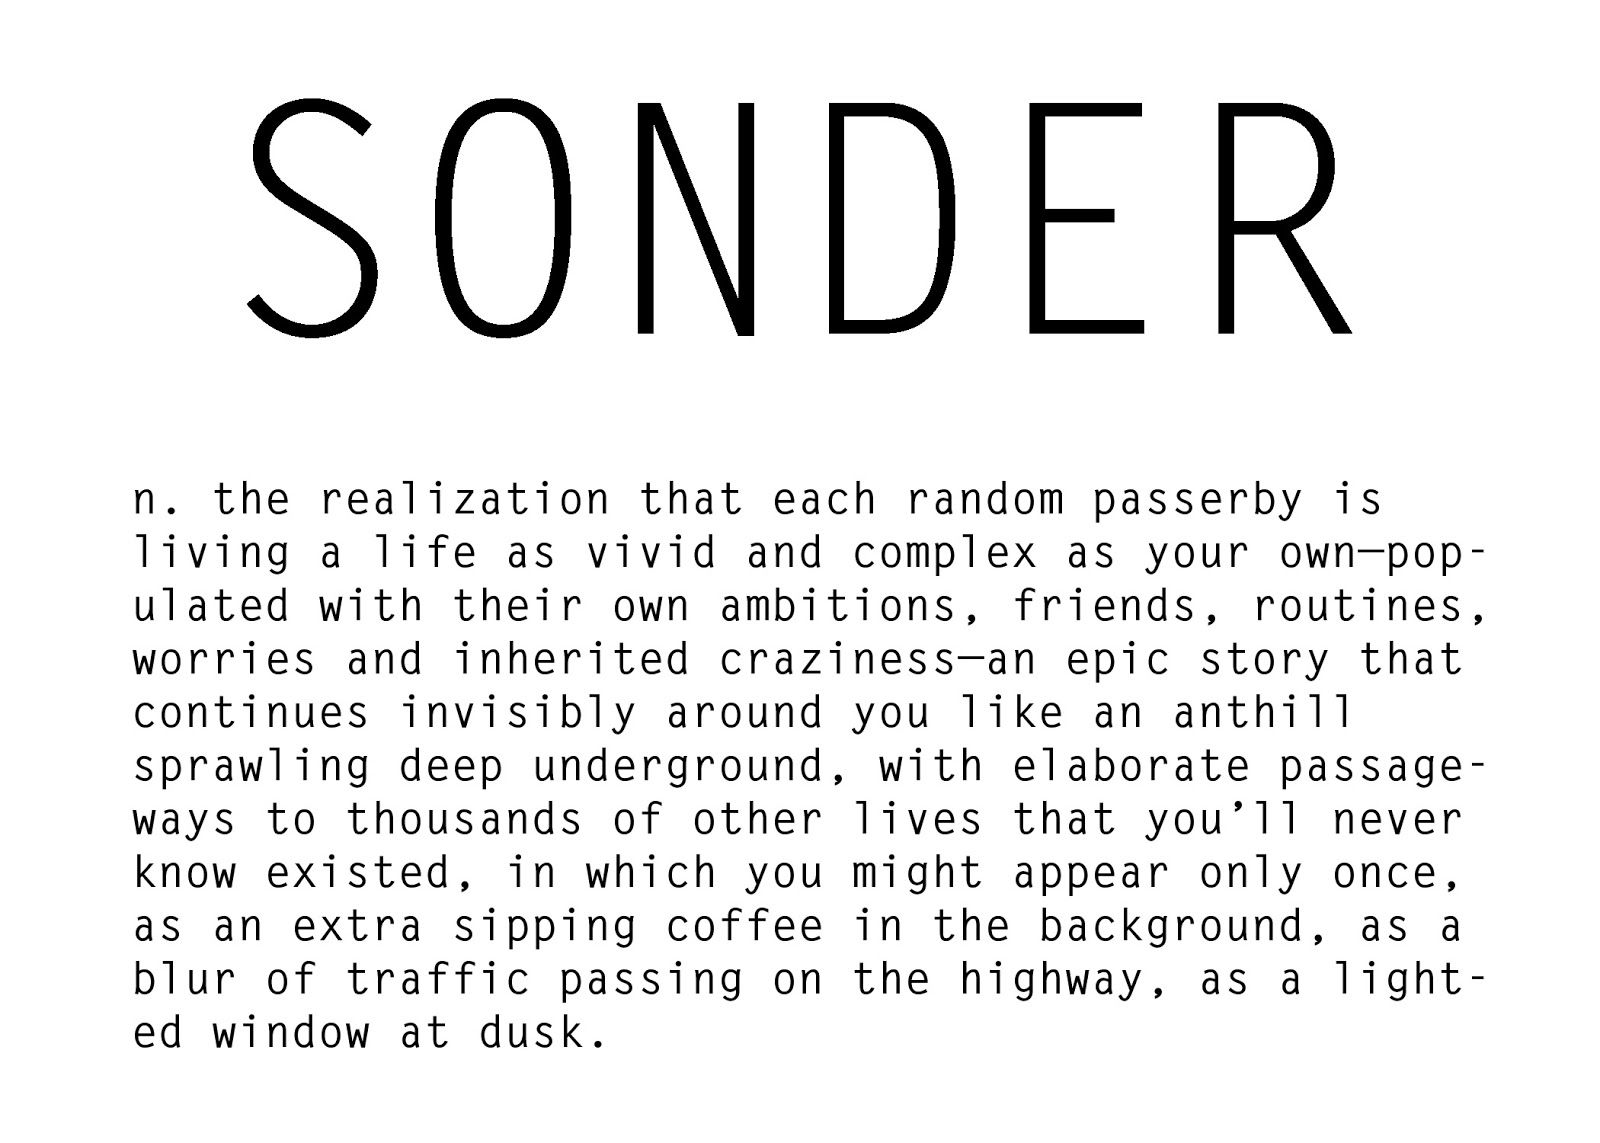 sonder n the realization that each random passerby is living a sonder n the realization that each random passerby is living a life as vivid